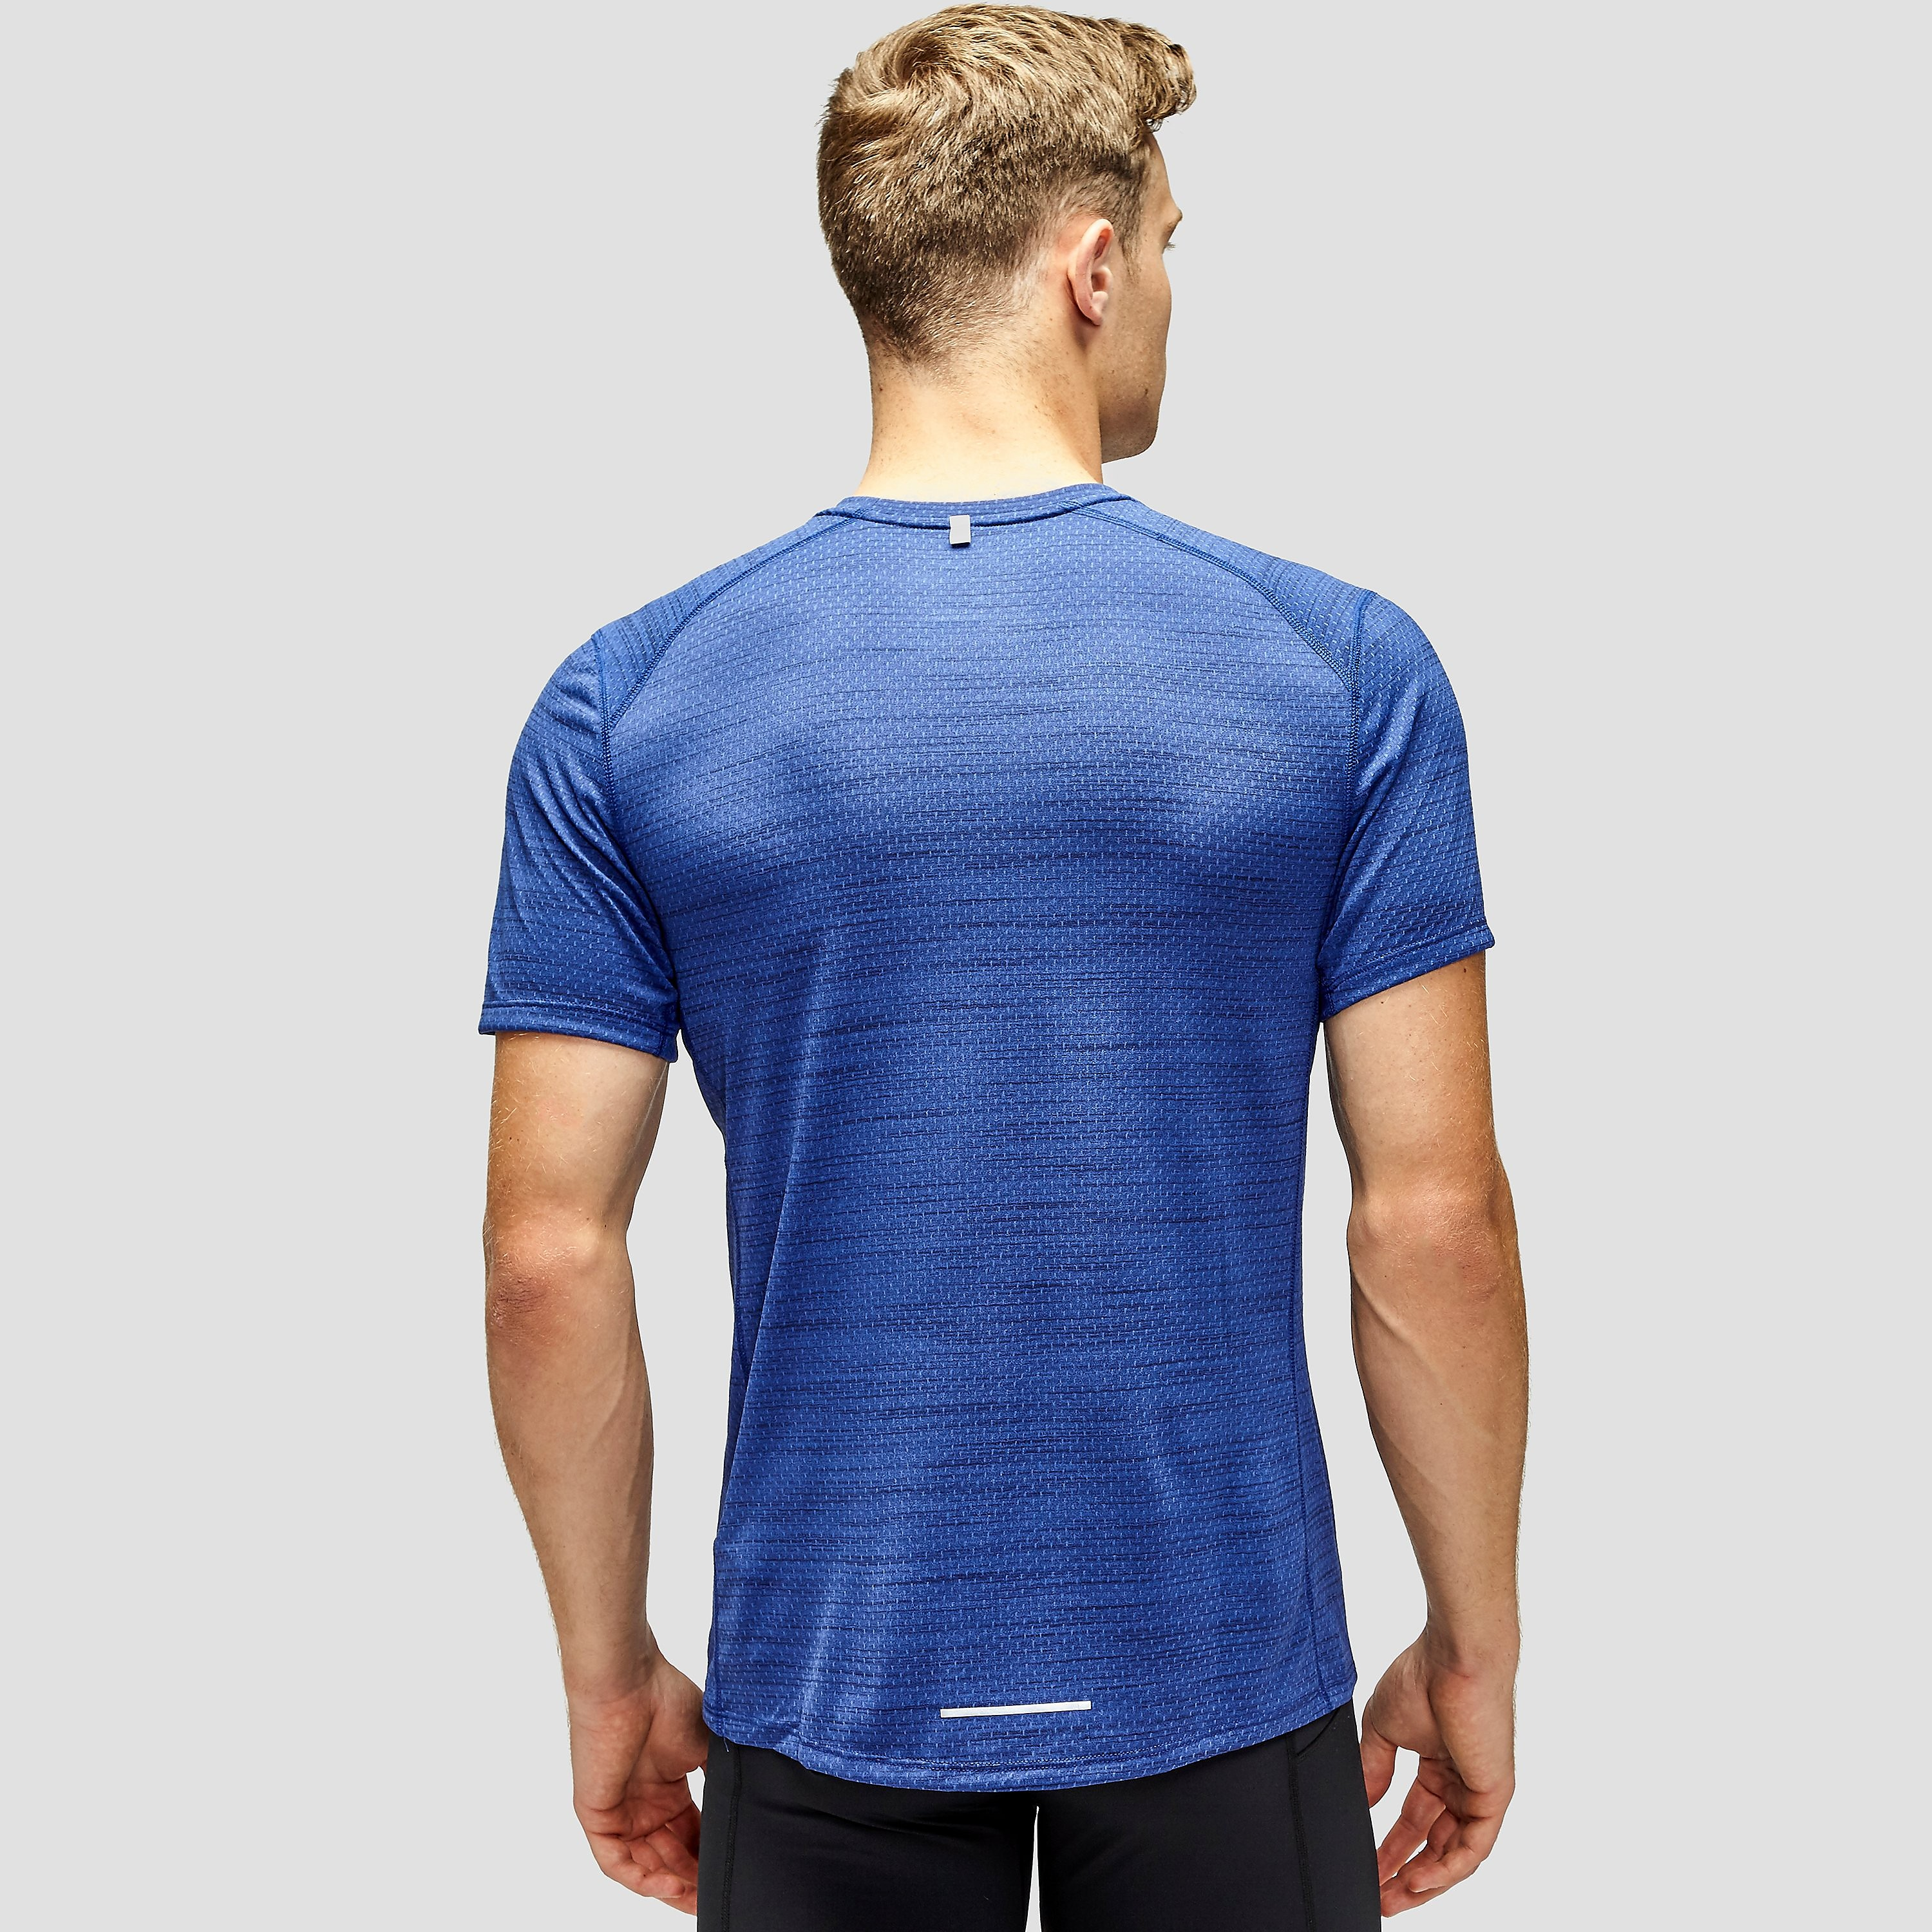 Nike Dri-FIT Cool Miler T-Shirt